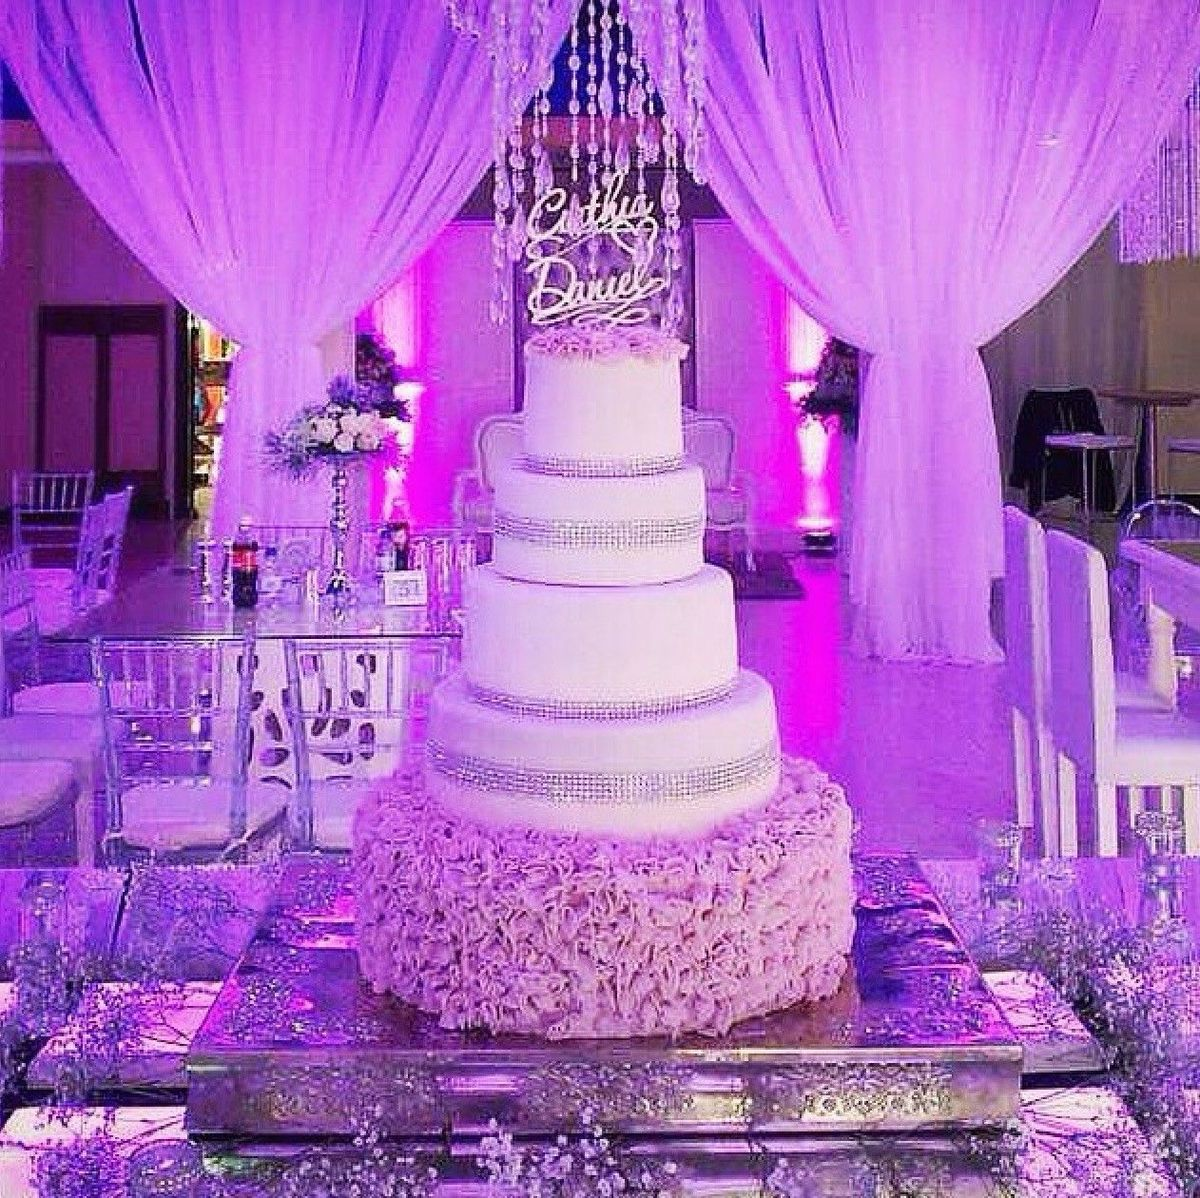 Alba Cake Design - Wedding Cake - Austin, TX - WeddingWire